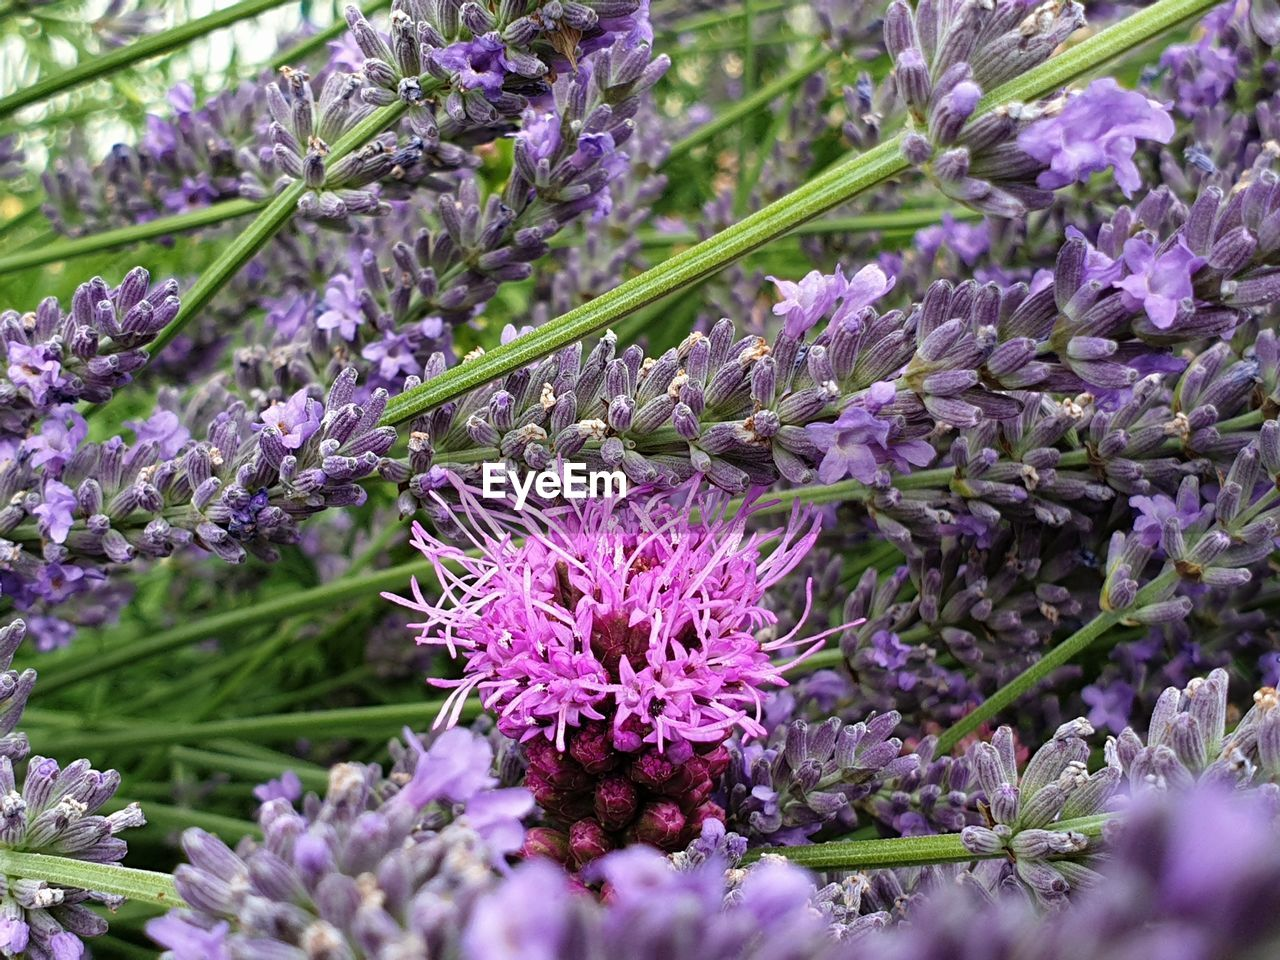 flower, flowering plant, plant, vulnerability, freshness, fragility, beauty in nature, growth, purple, close-up, selective focus, nature, petal, springtime, day, botany, no people, flower head, blossom, lavender, outdoors, bunch of flowers, lilac, flowerbed